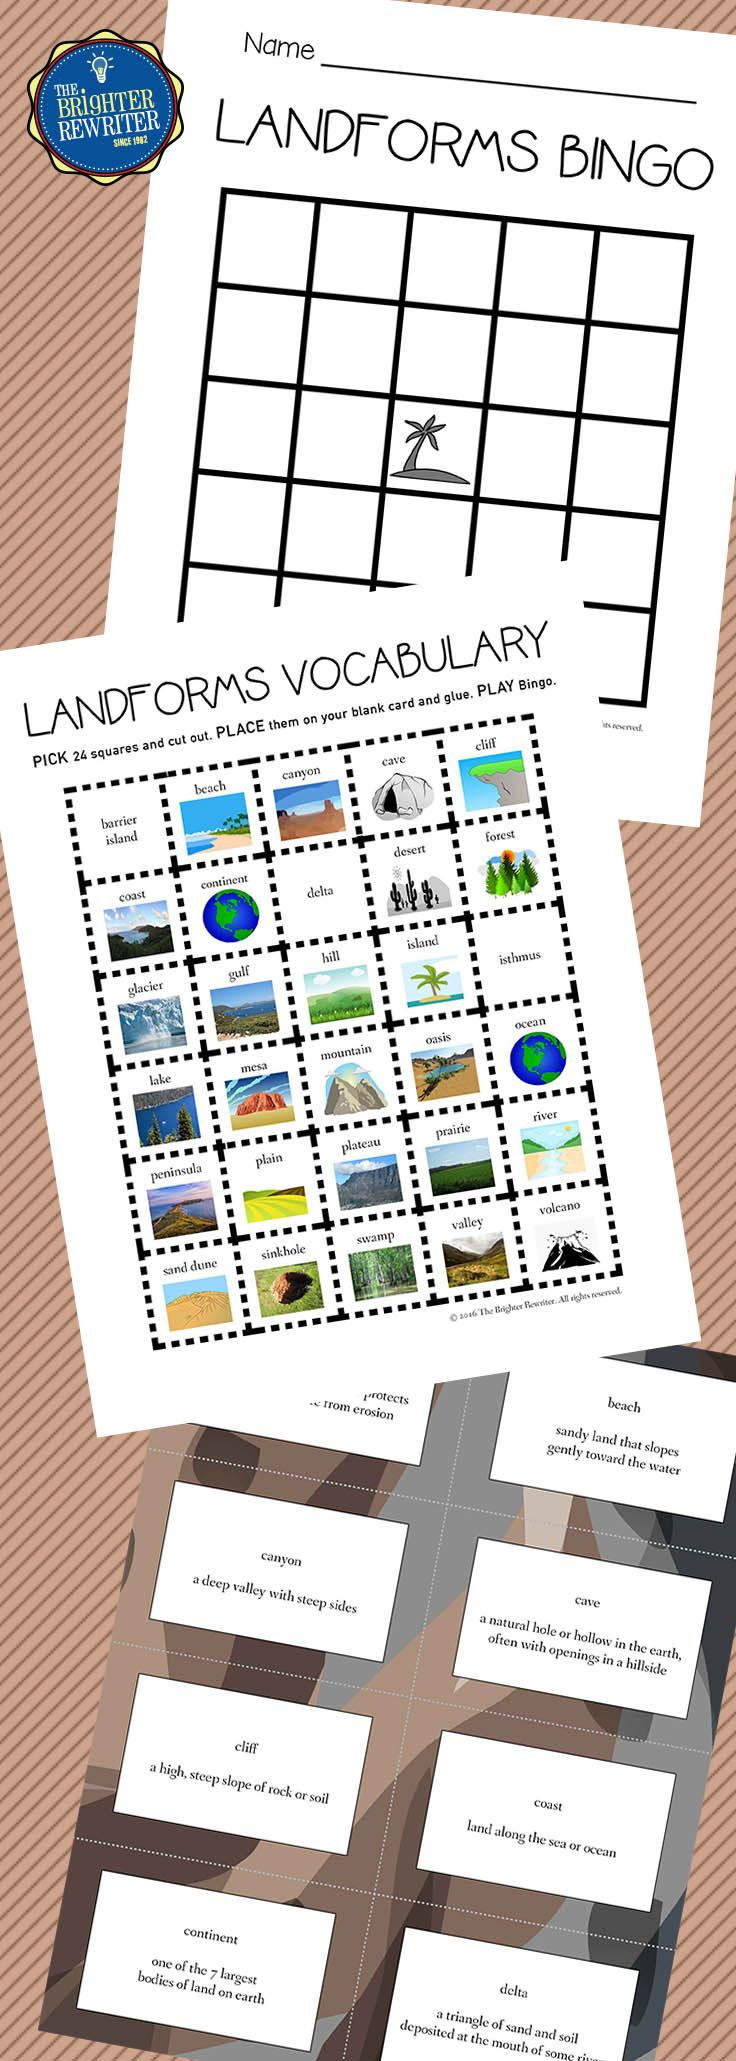 Workbooks landform matching worksheets : 256 best Landforms images on Pinterest | Maps, 6th grade science ...